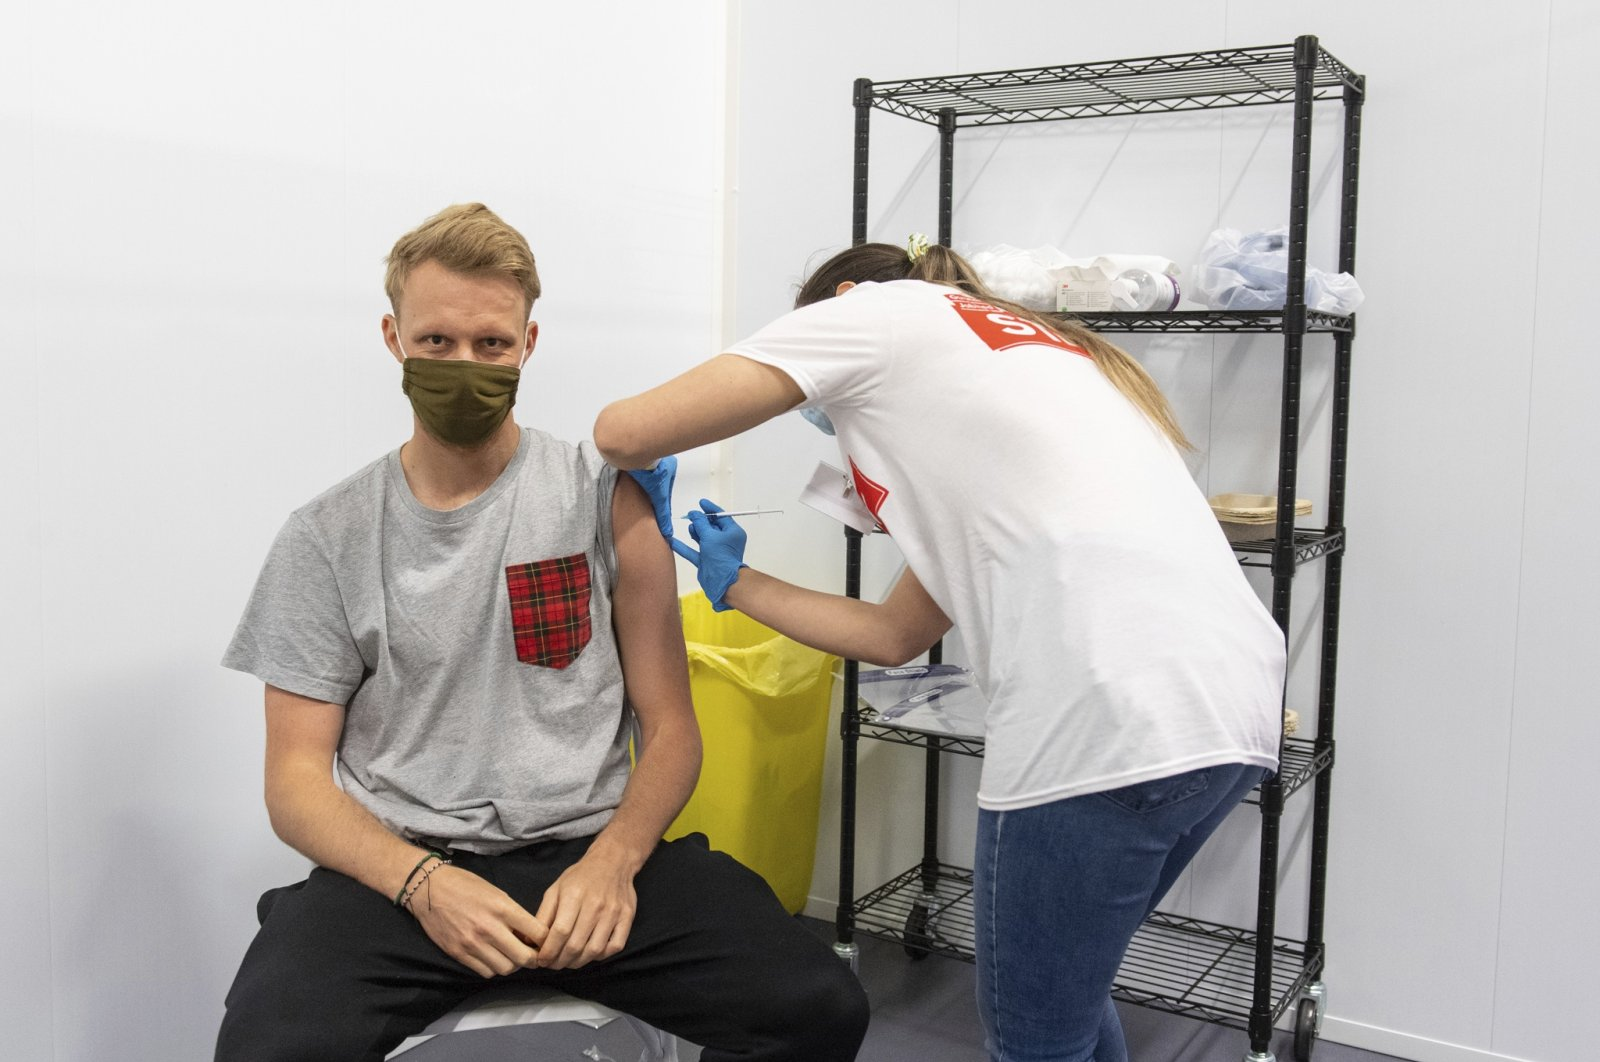 A man receives a dose of a COVID-19 vaccine at a mass coronavirus vaccination center in Arsenal's Emirates Stadium, London, U.K., June 25, 2021. (AP Photo)